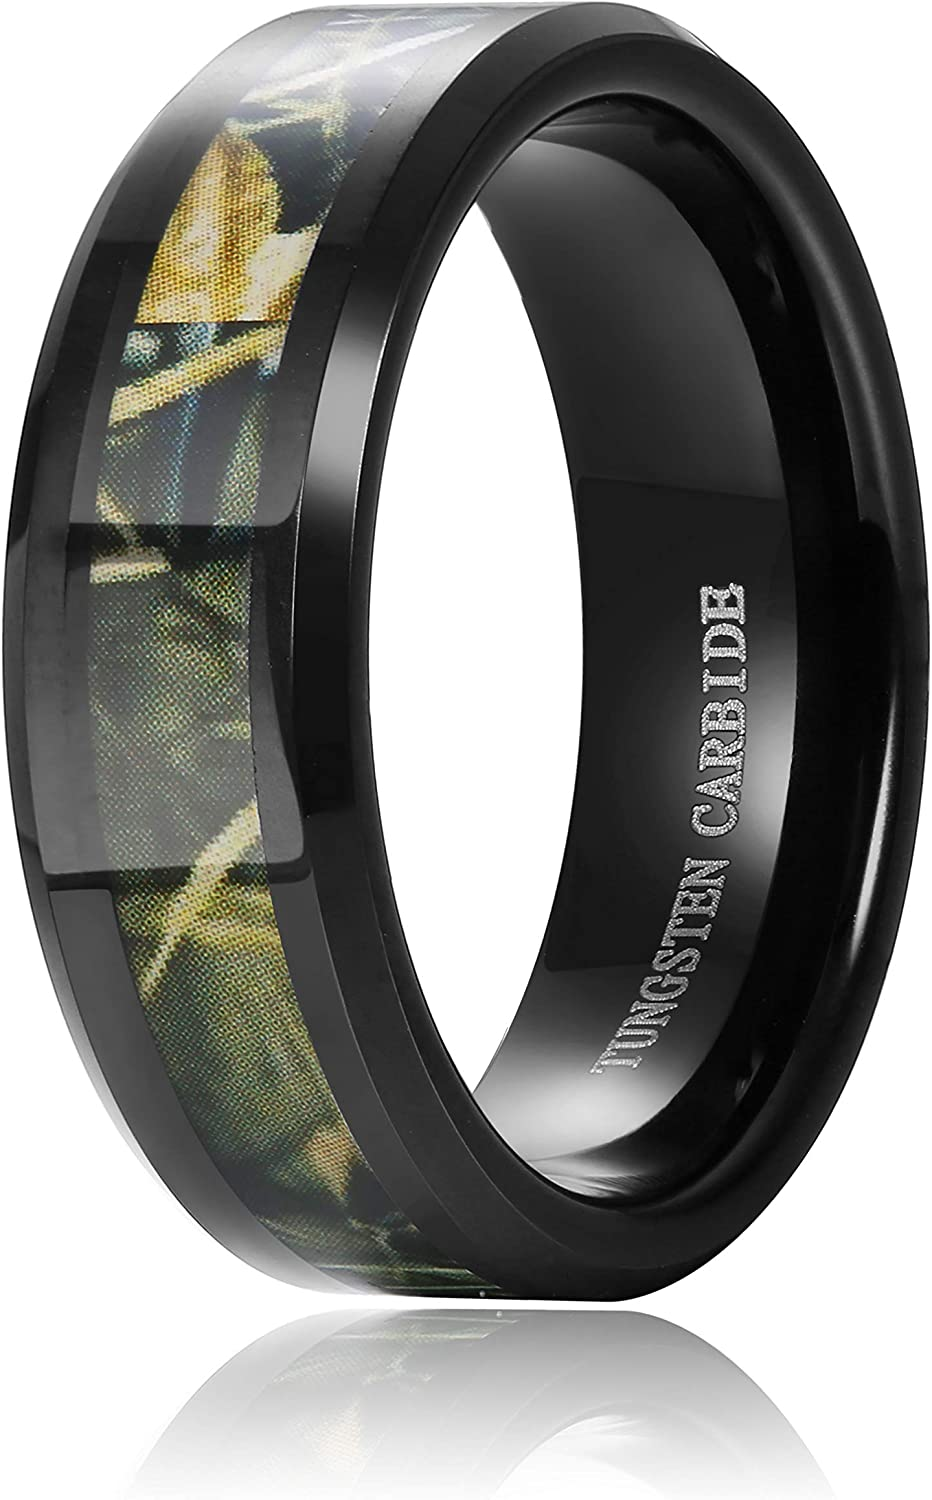 Hanpabum 8mm Mens Black Tungsten Carbide Ring Wedding Band Classic Camo Camouflage Comfort Fit Size 6-14